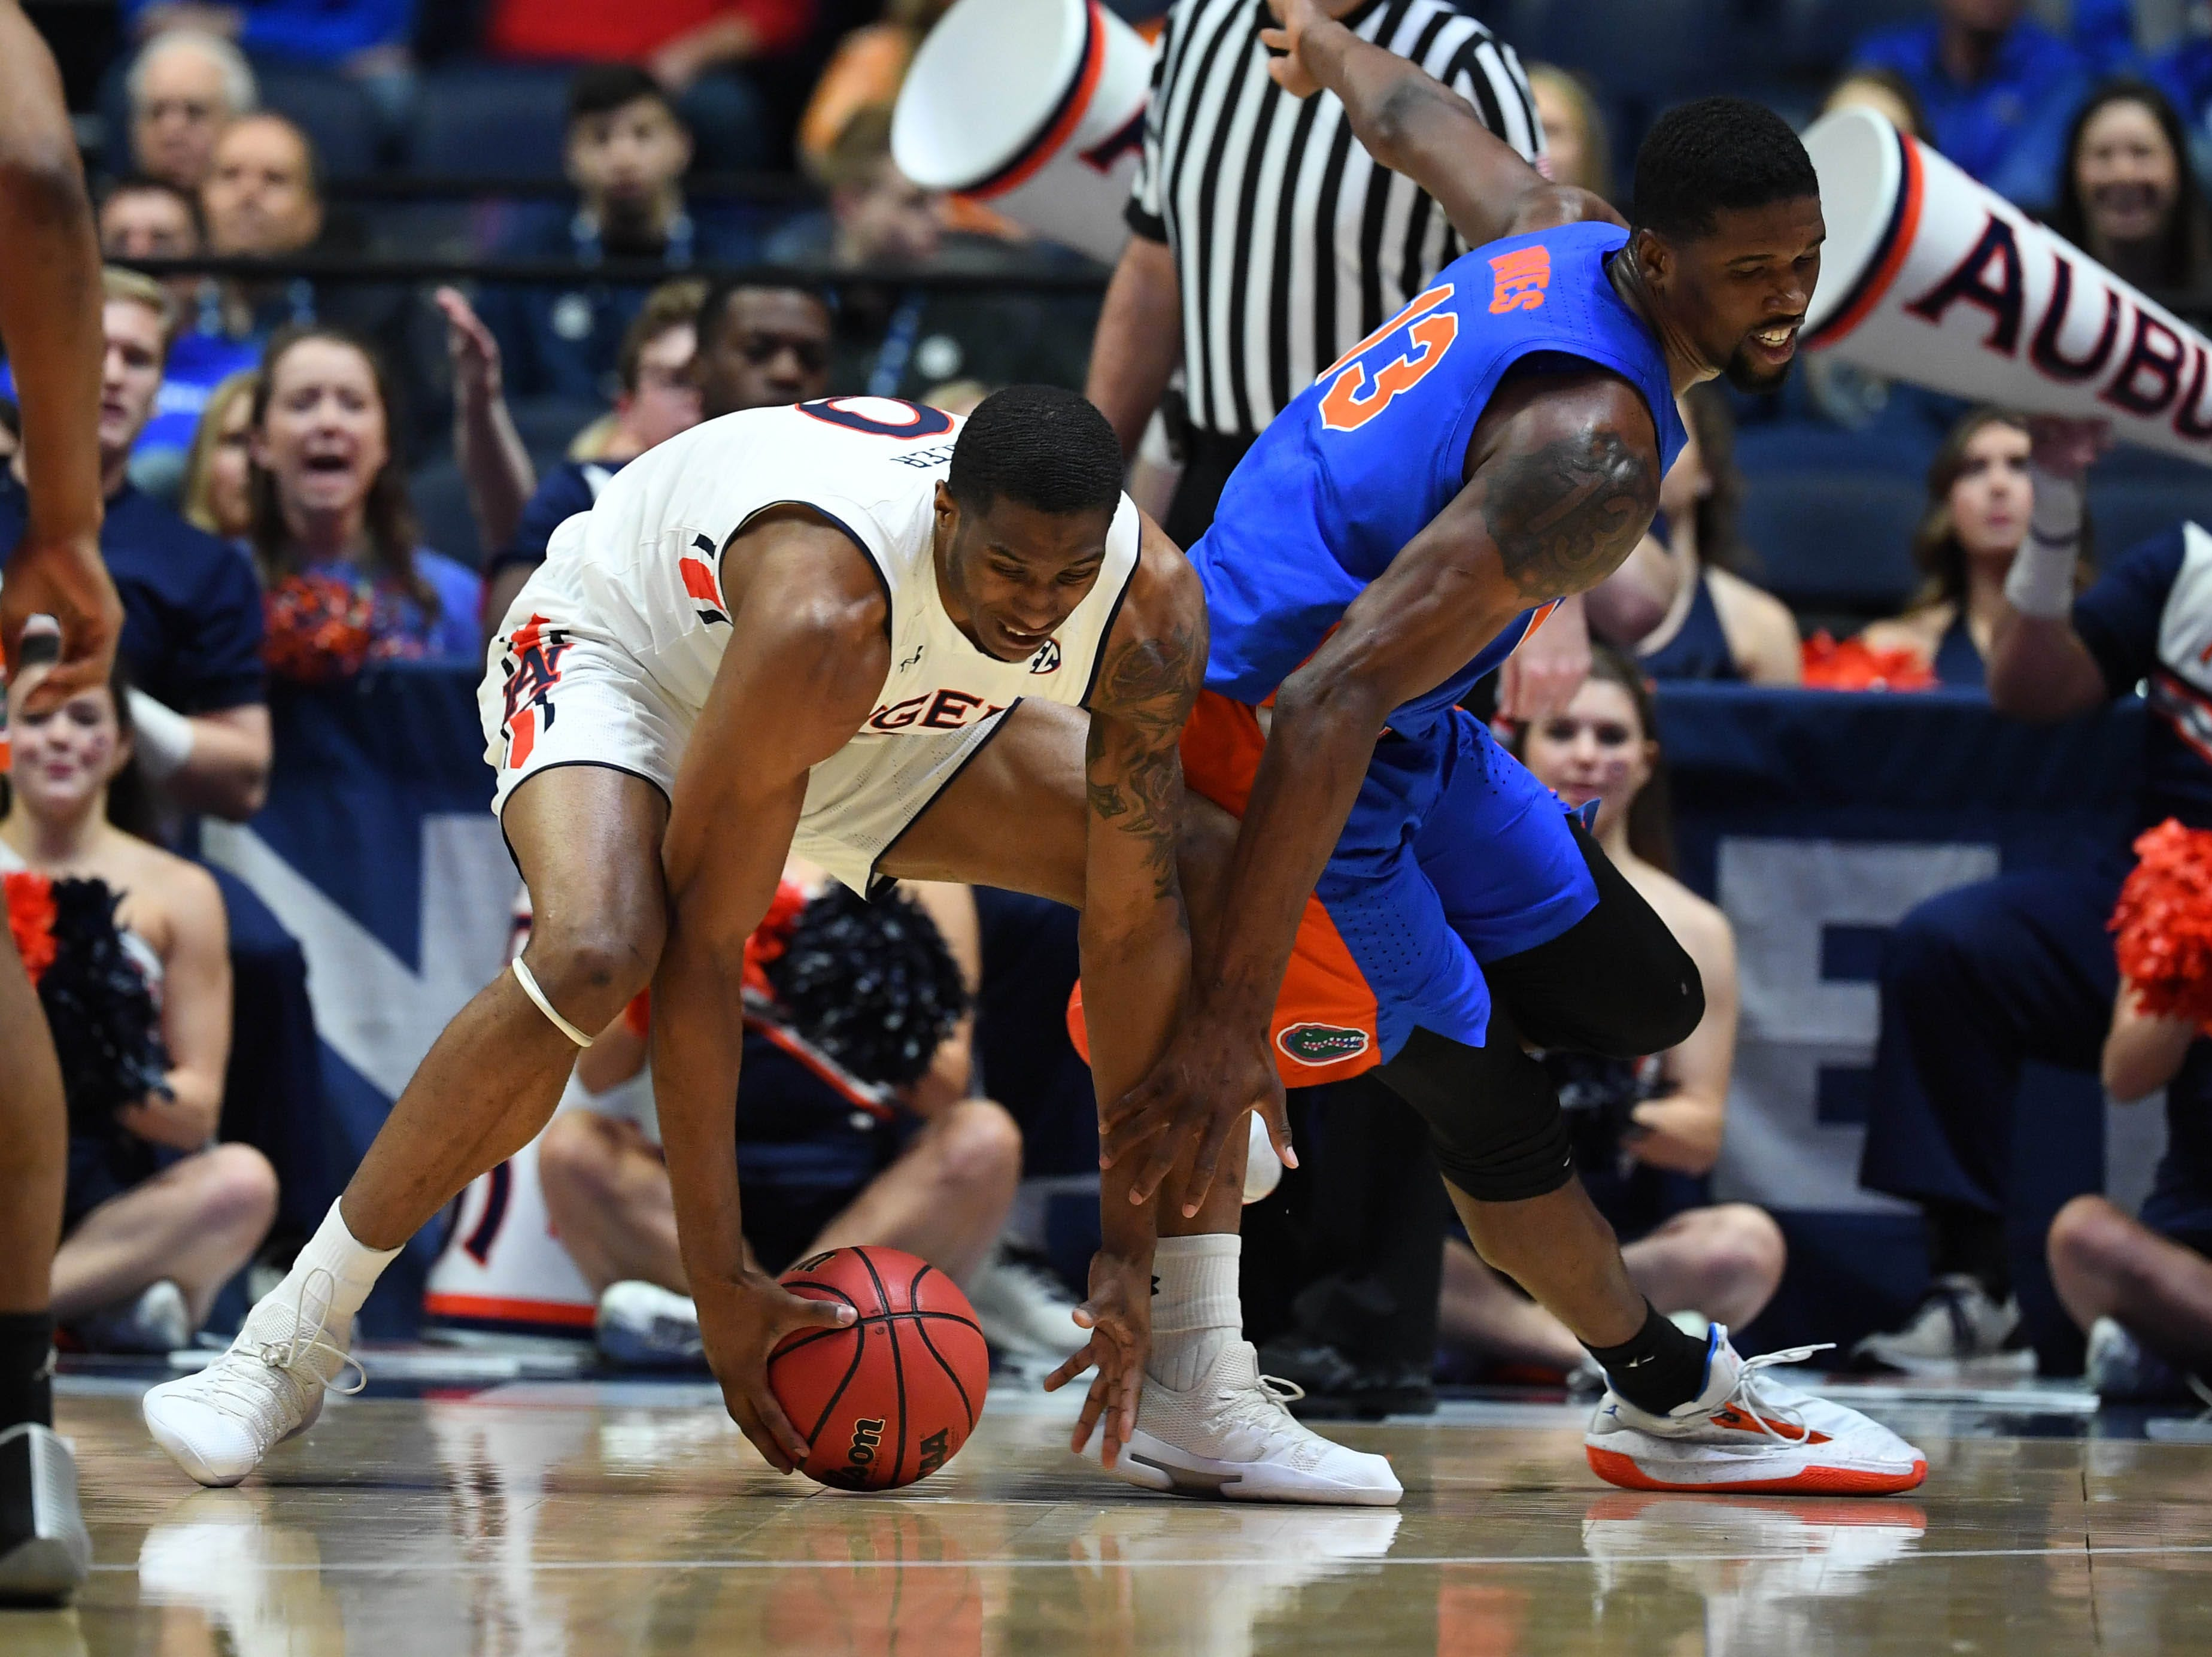 Mar 16, 2019; Nashville, TN, USA; Florida Gators center Kevarrius Hayes (13) tries to chase down a loose ball against Auburn Tigers forward Horace Spencer (0) during the first half of the SEC conference tournament at Bridgestone Arena. Mandatory Credit: Christopher Hanewinckel-USA TODAY Sports